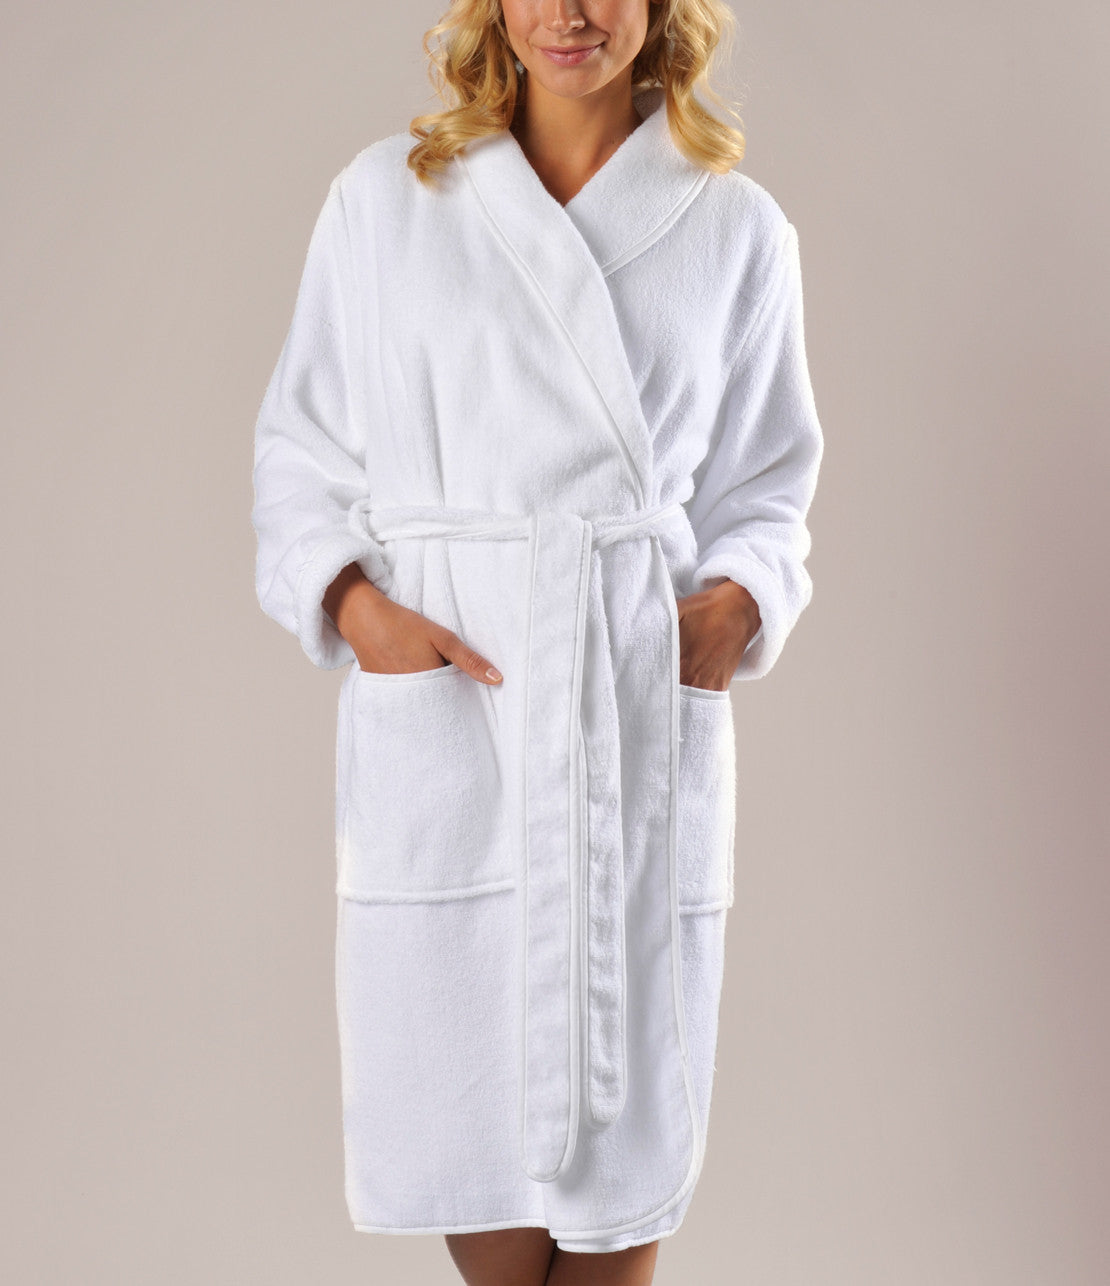 Women's Spa Robe